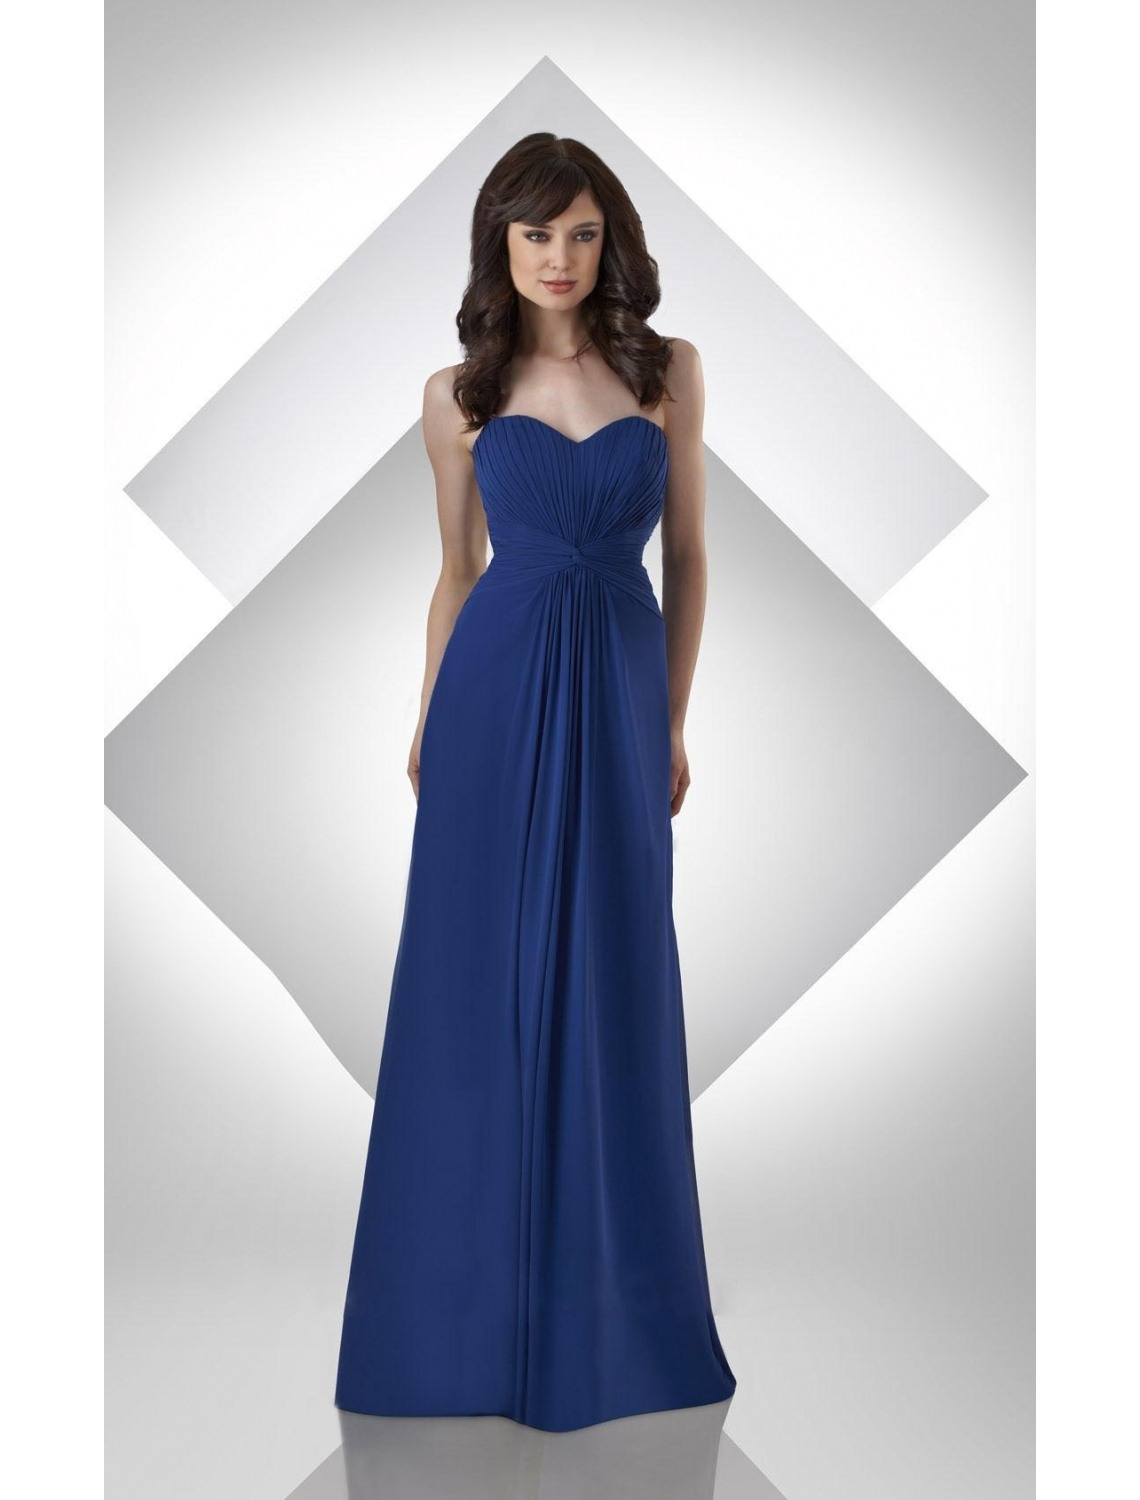 Formal Leicht Kleid Royalblau Lang Ärmel13 Luxus Kleid Royalblau Lang Boutique